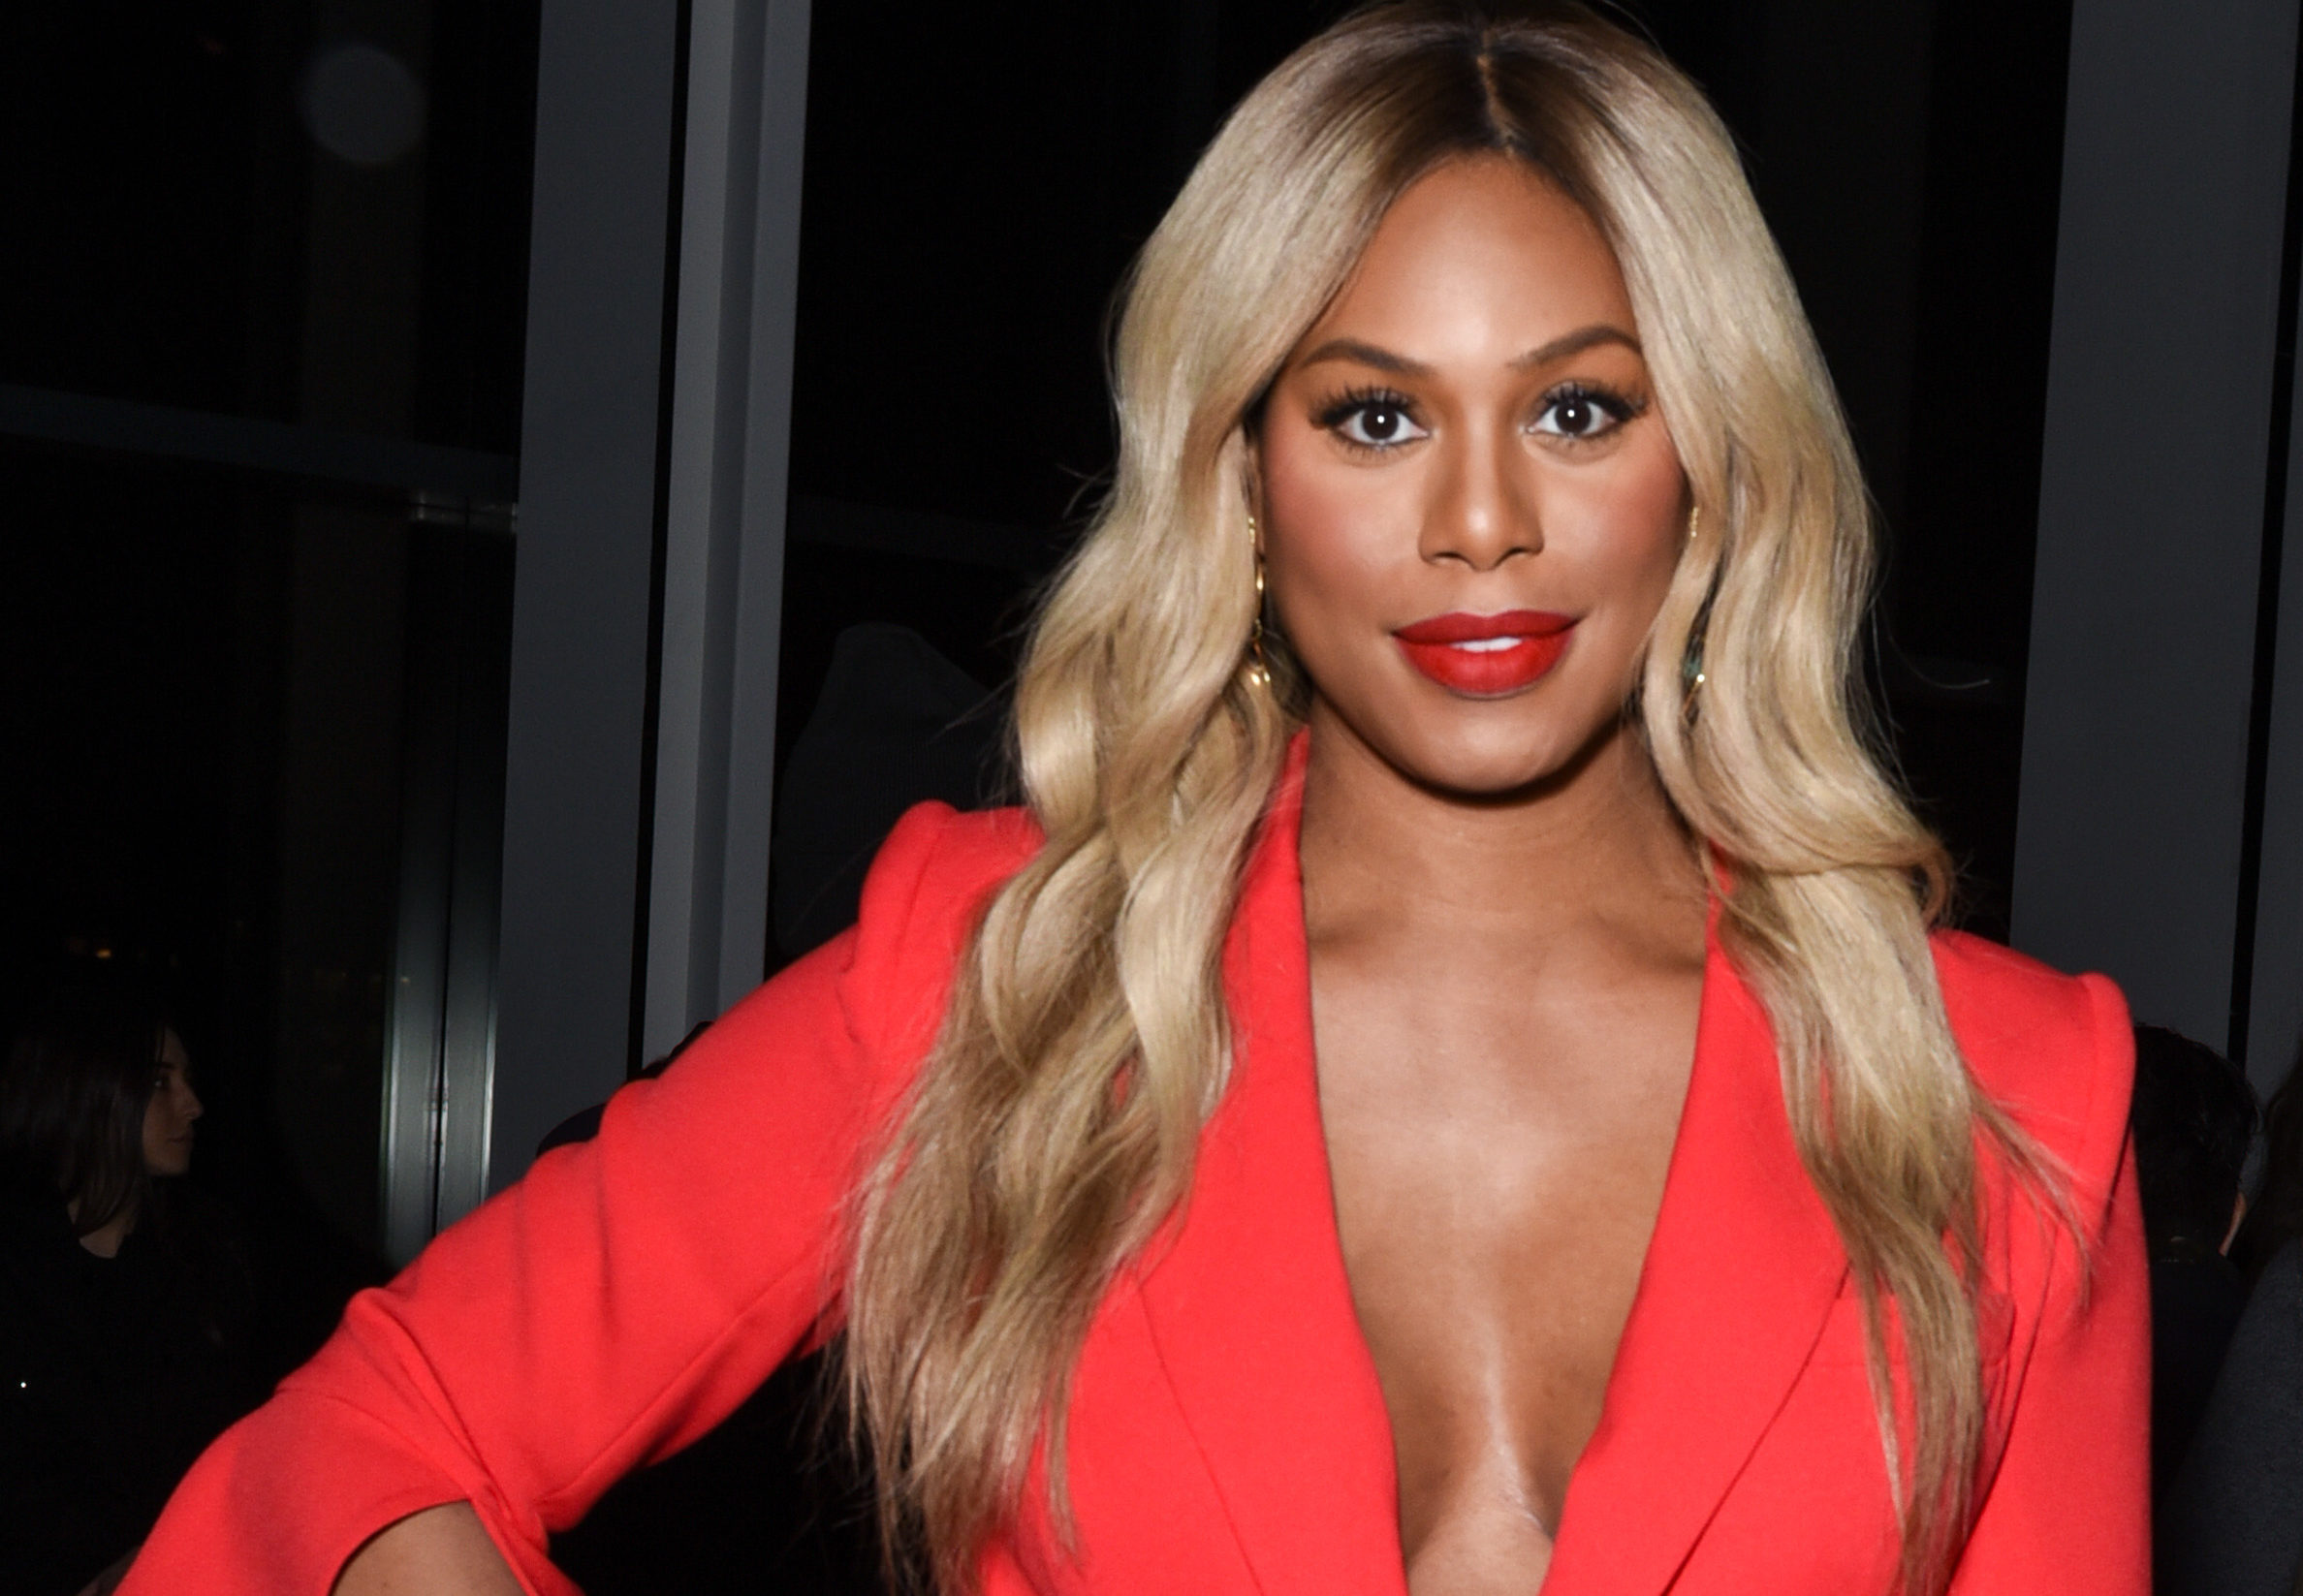 Laverne Cox met her boyfriend on Tinder, so stay hopeful y'all